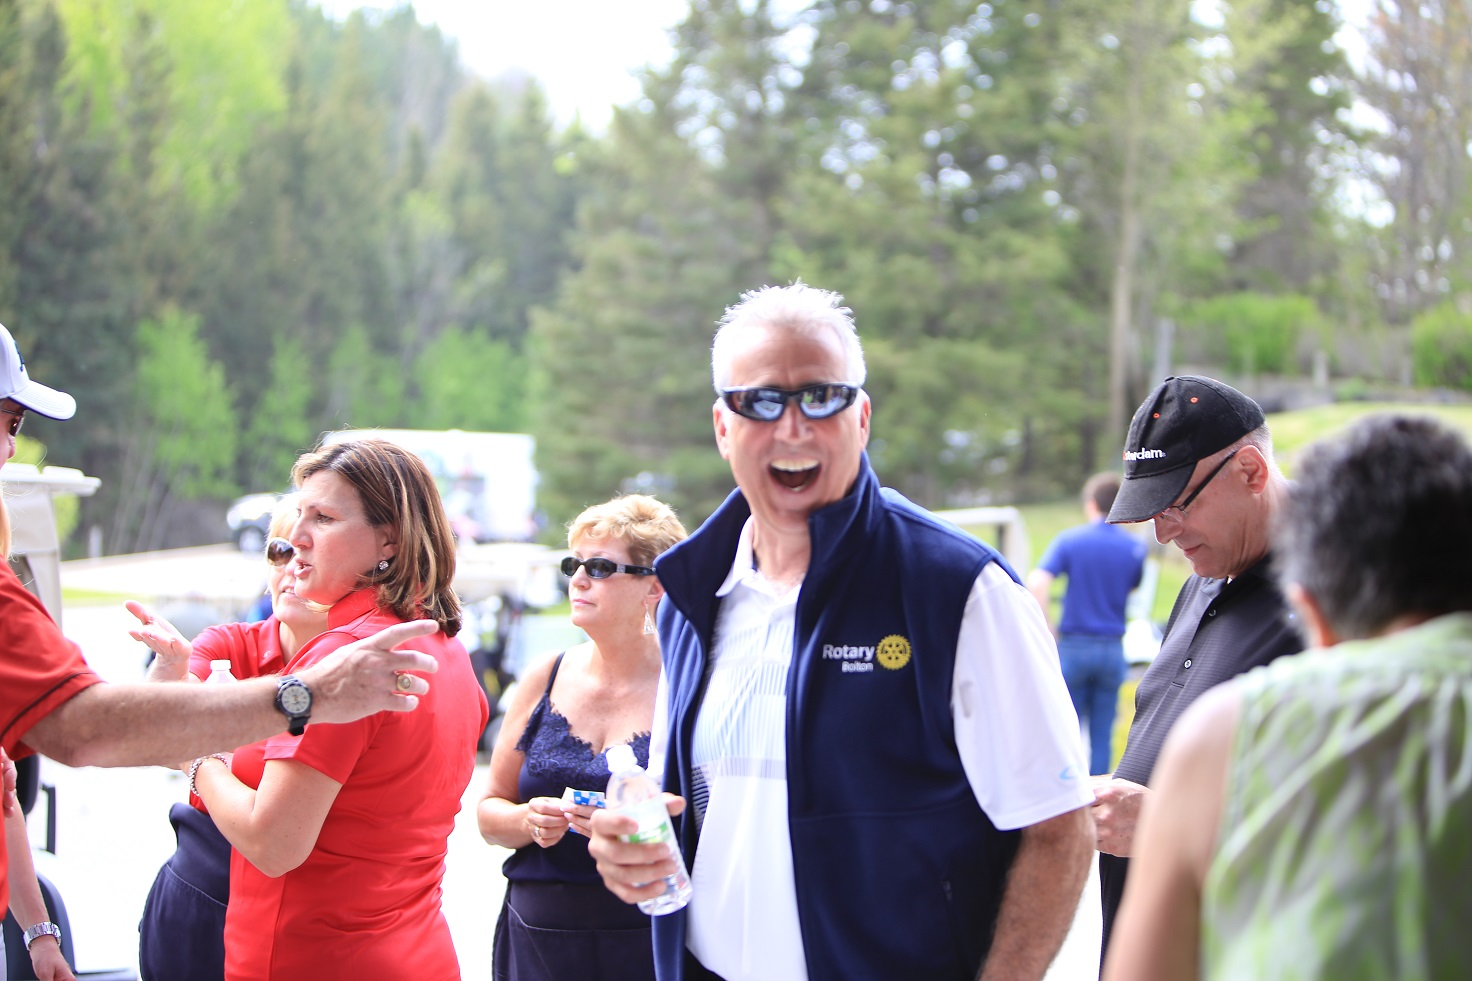 2019 Bolton Rotary Early Bird Golf Classic gallery image #21